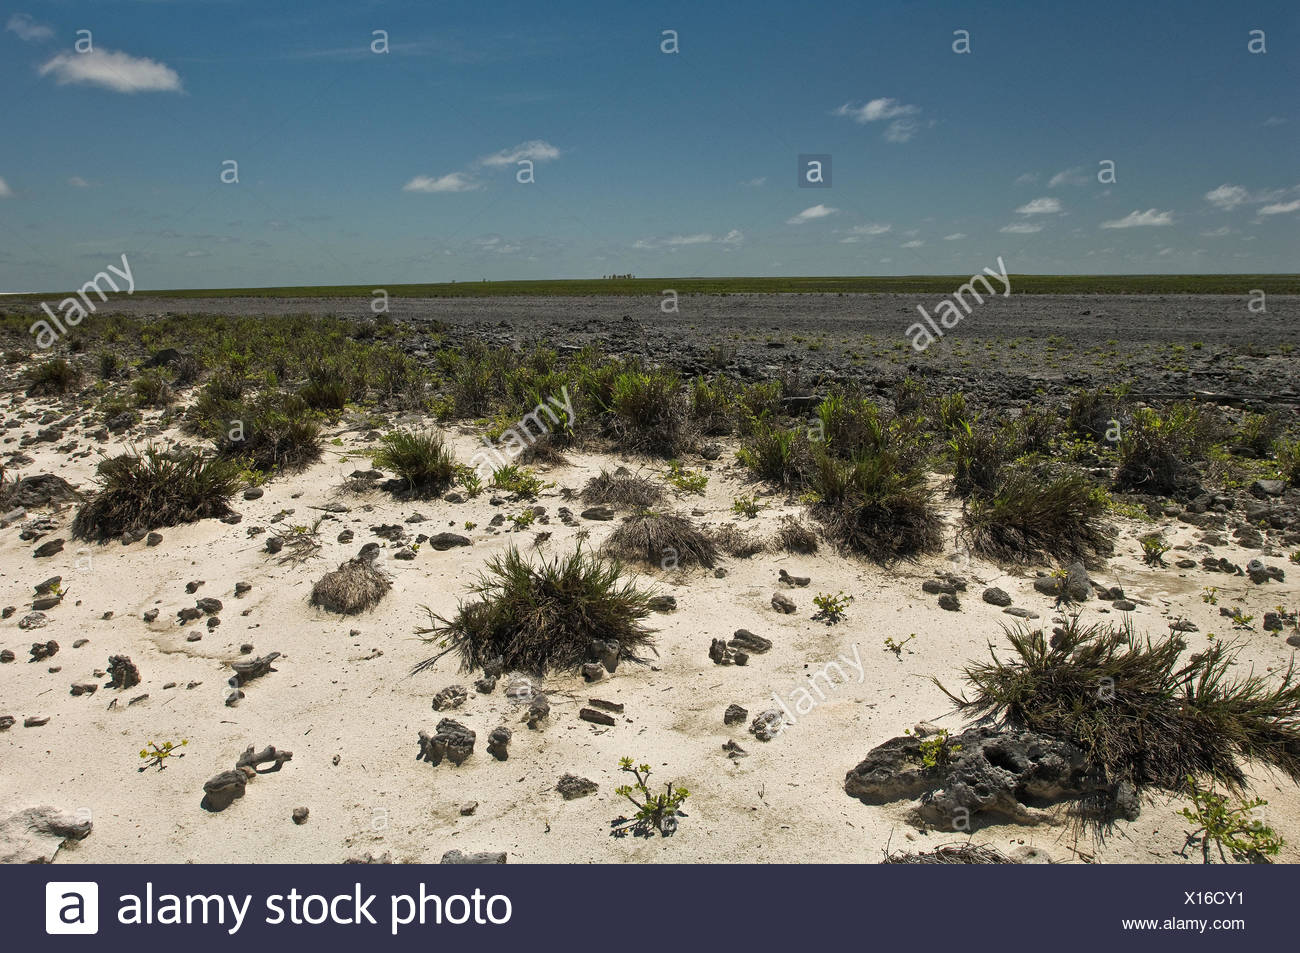 New vegetation on Starbuck Island in the Southern Line Islands. - Stock Image